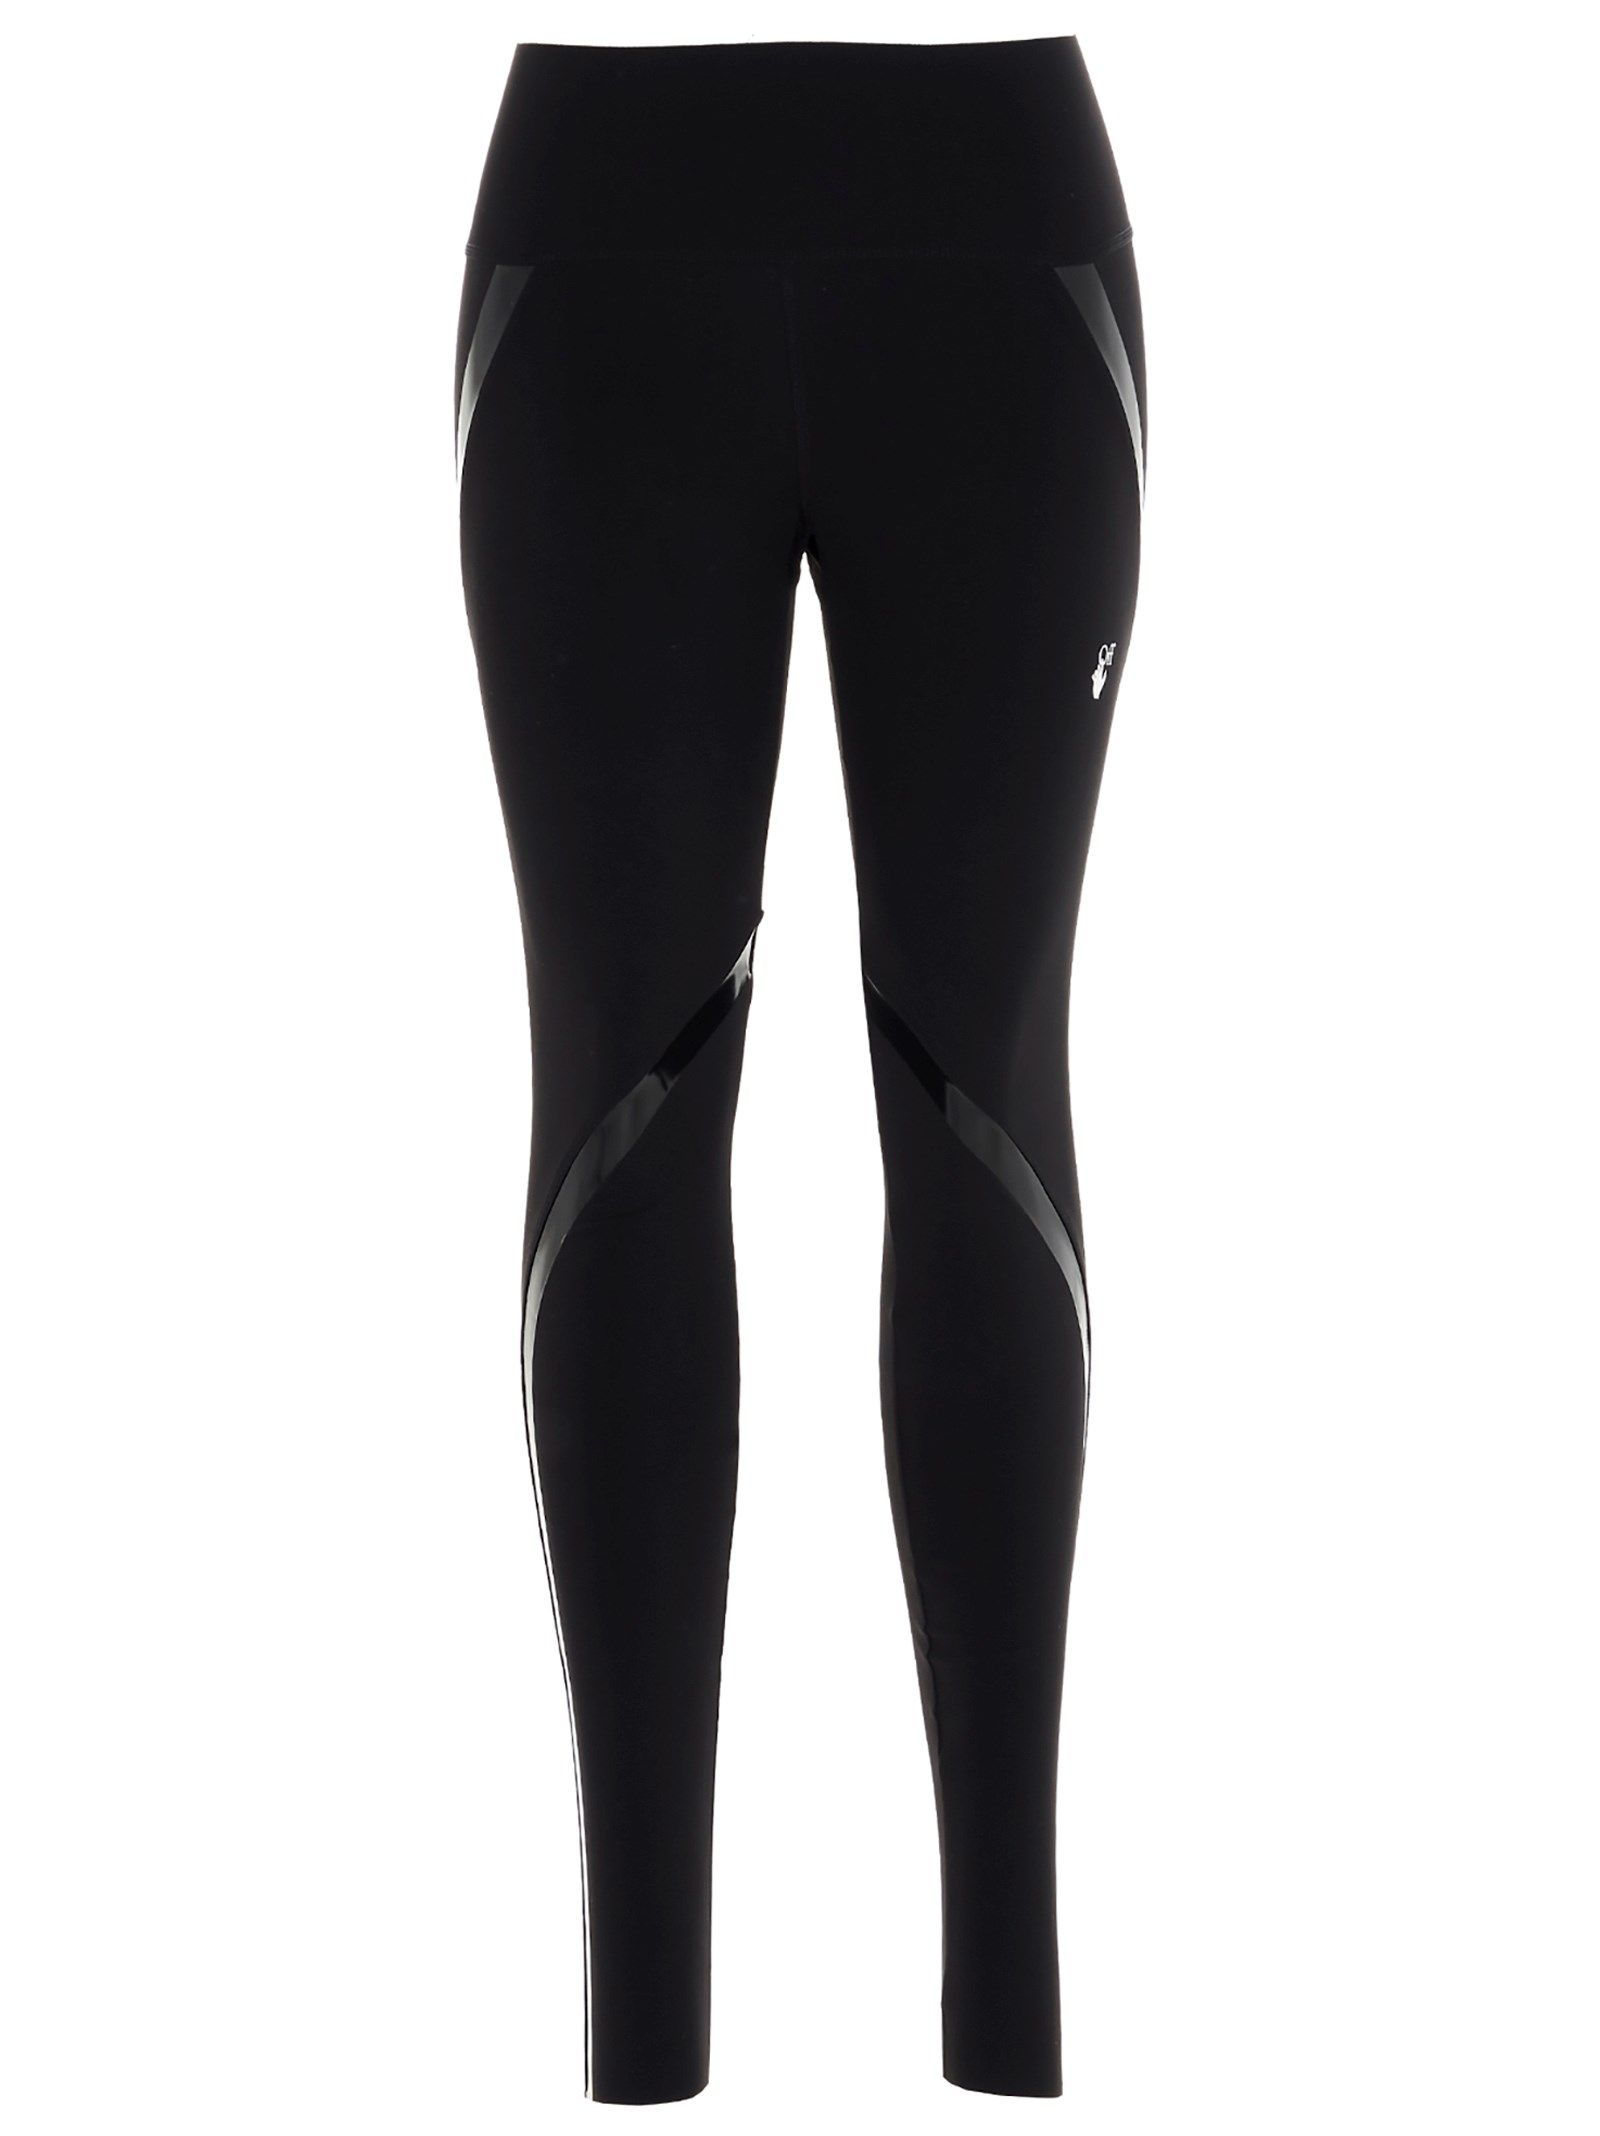 Off-White OFF-WHITE WOMEN'S BLACK POLYAMIDE LEGGINGS